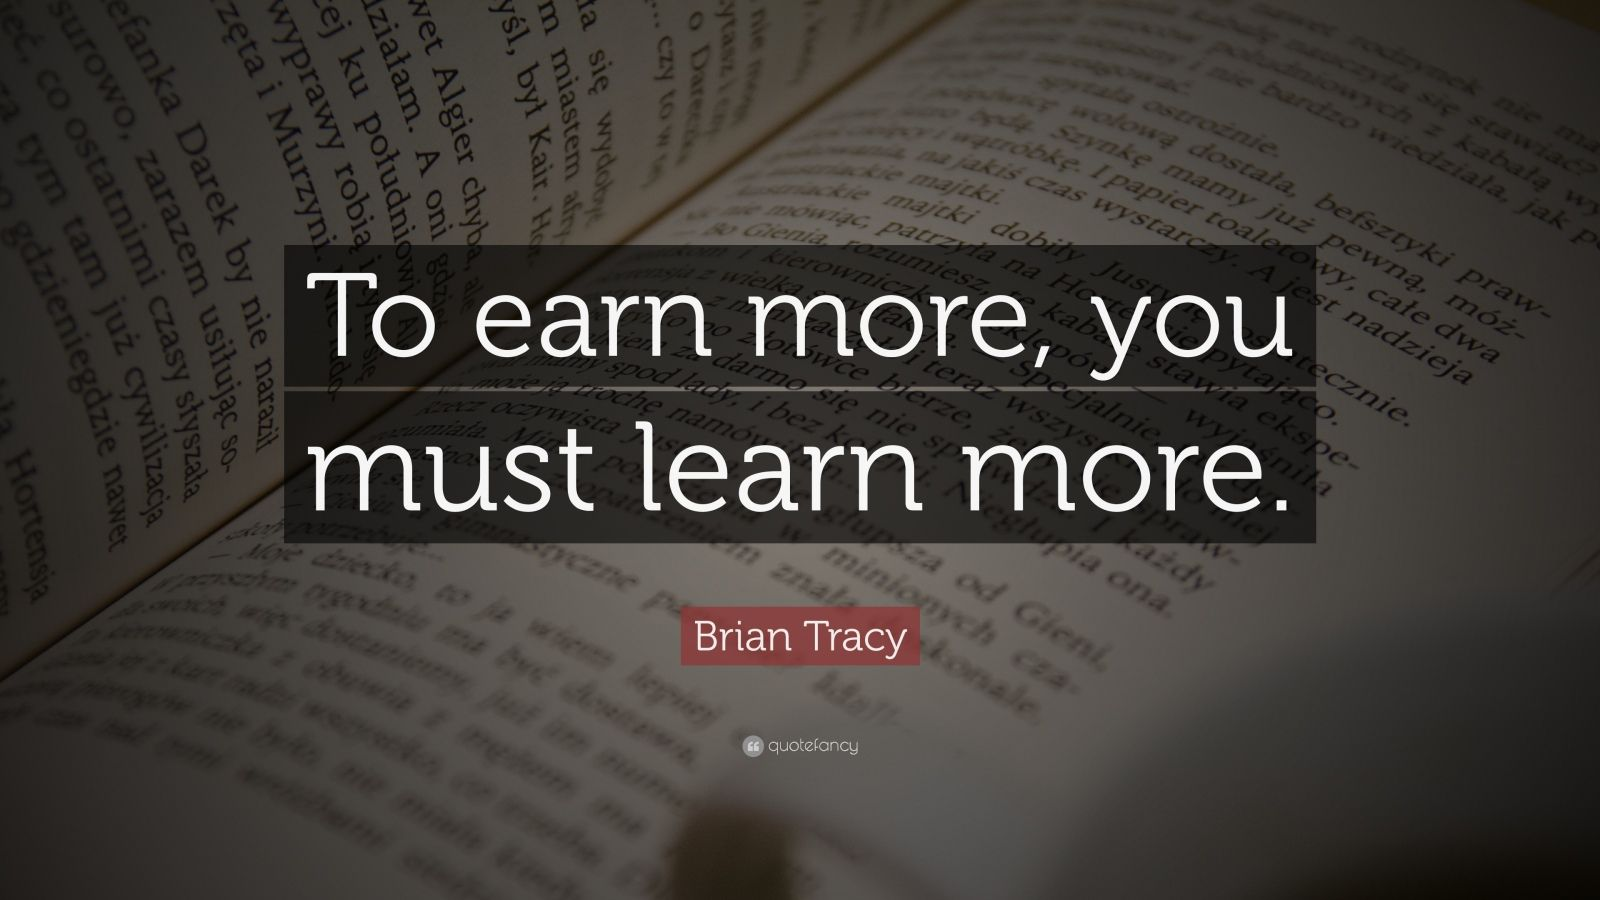 [Image] Brian Tracy keeps things simple.